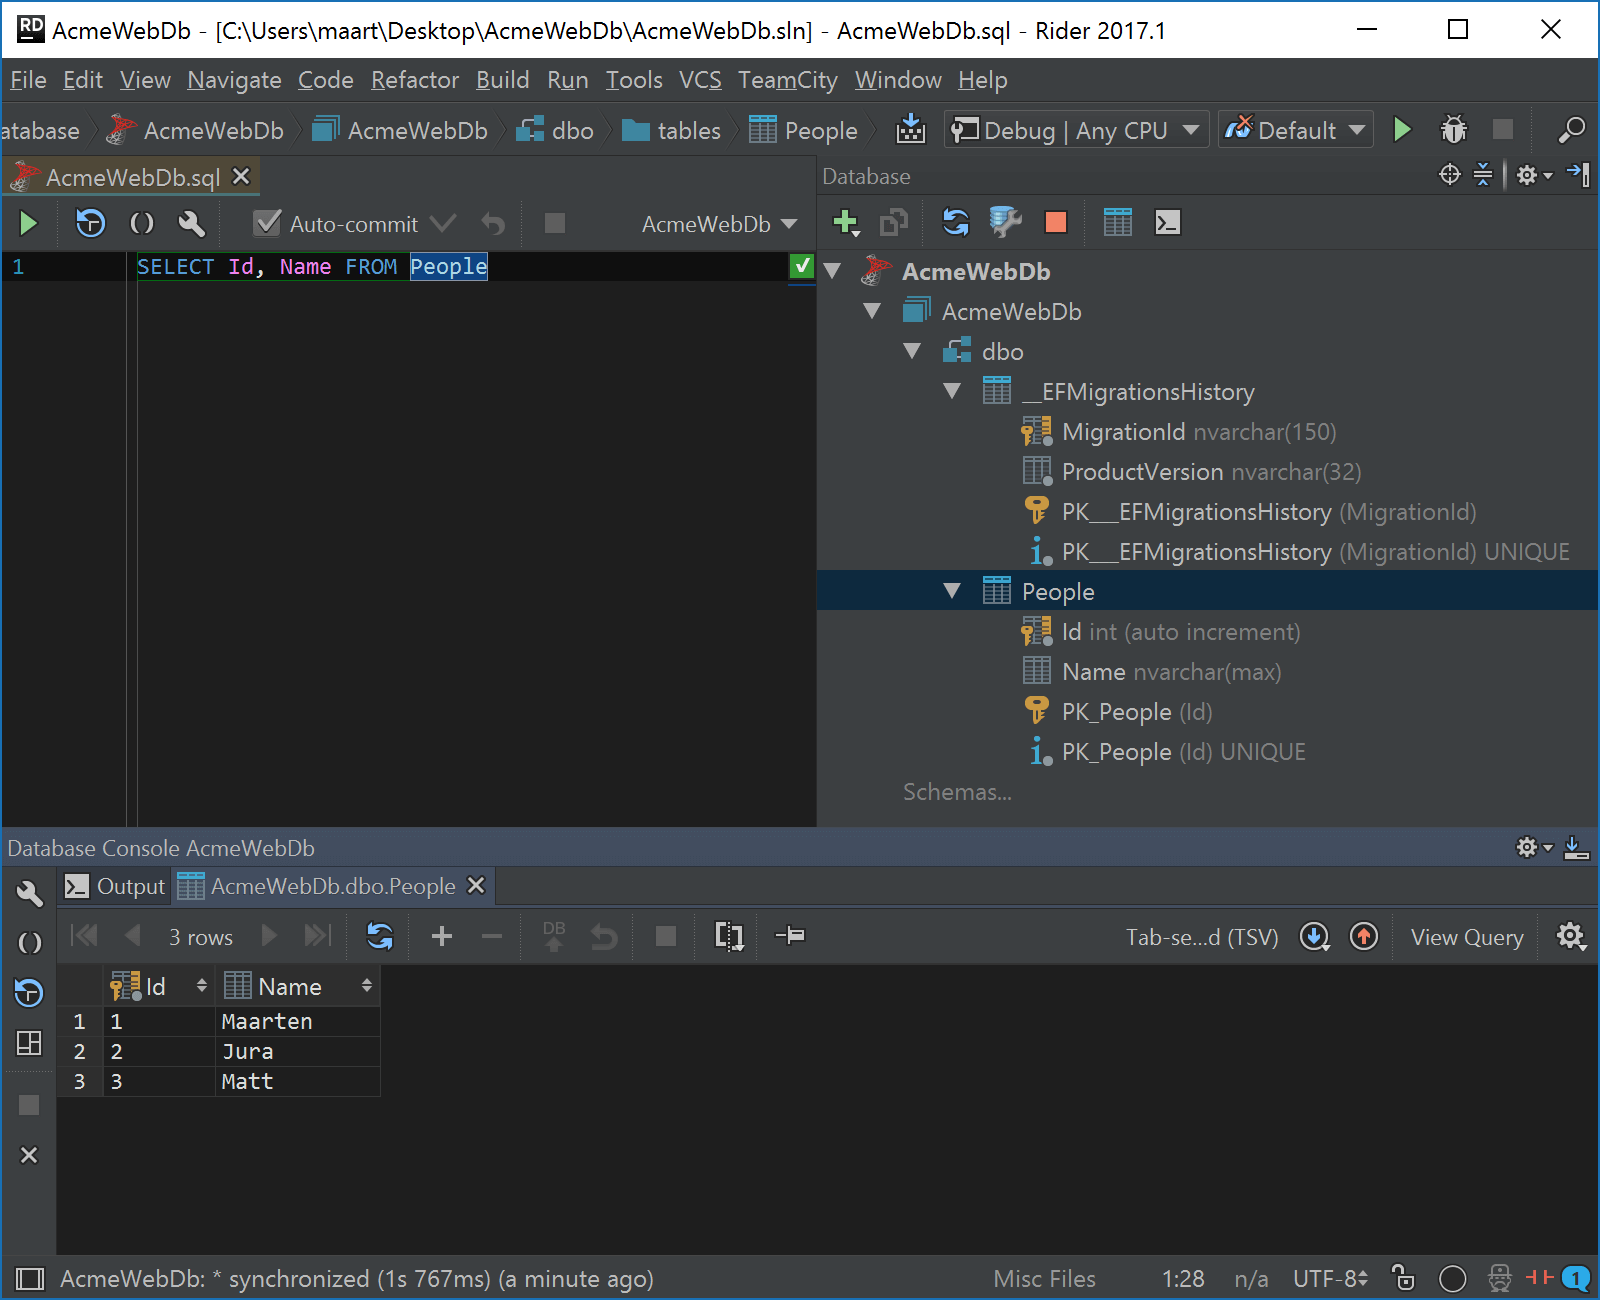 Rider database tools in action